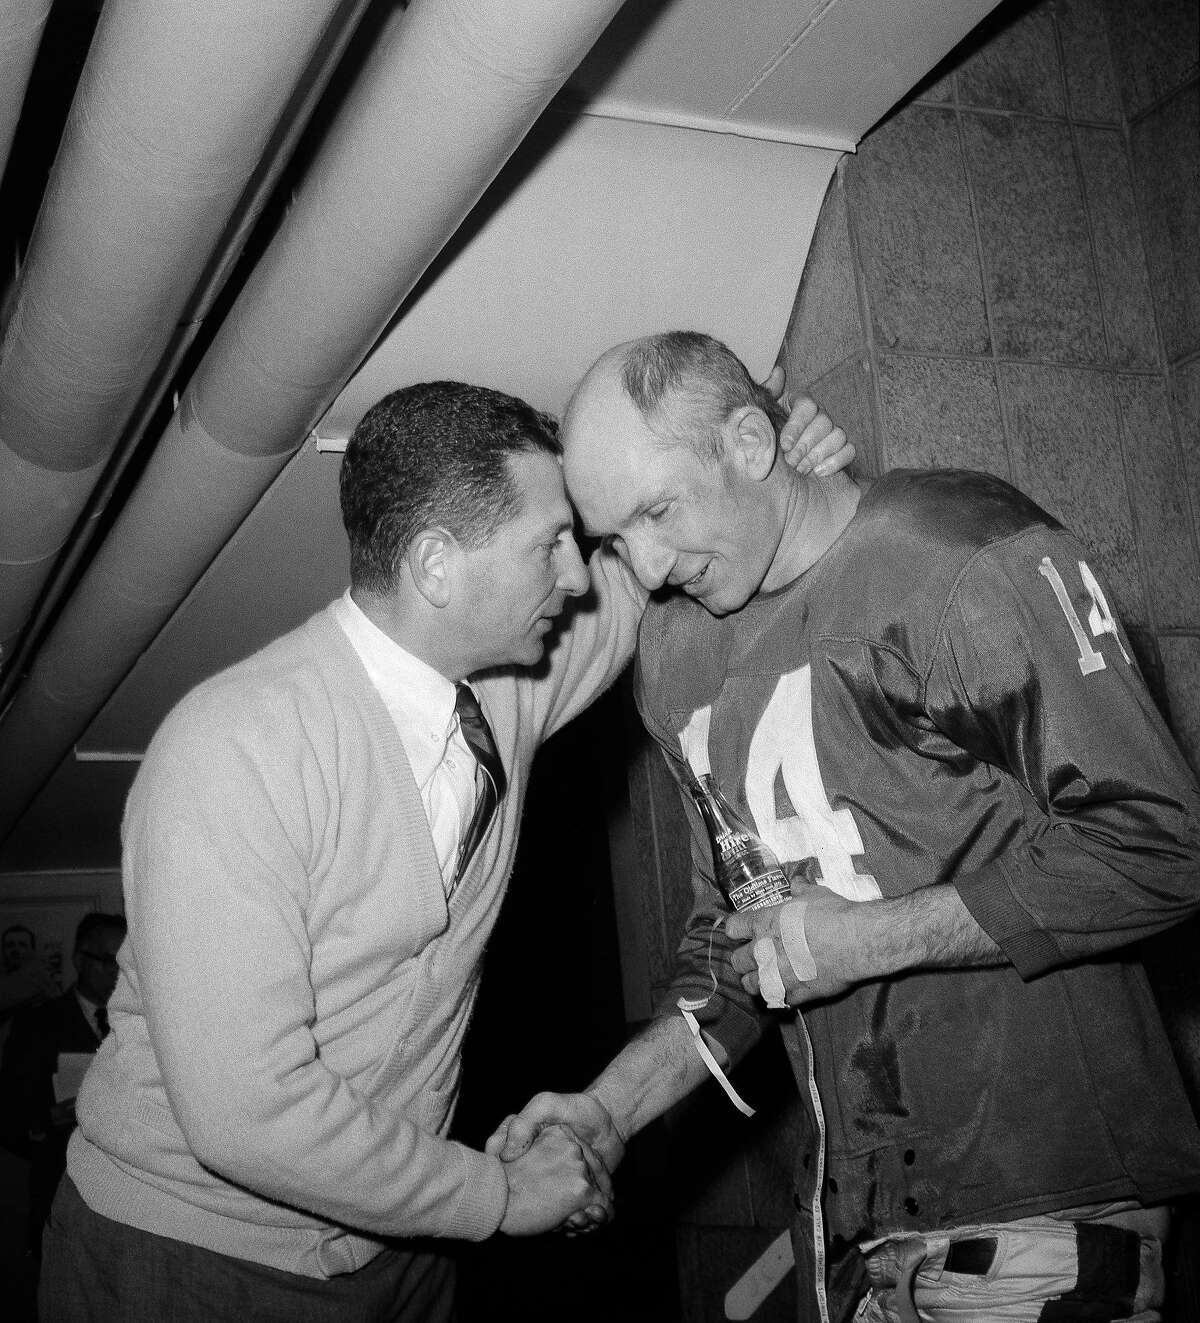 FILE - In this Dec. 15, 1963, file photo, New York Giants coach Allie Sherman, left, congratulates his quarterback, Y. A. Tittle, after defeating the Pittsburgh Steelers in a football game at Yankee Stadium in New York. Tittle, the Hall of Fame quarterback and 1963 NFL Most Valuable Player, has died. He was 90. His family confirmed to LSU, where Tittle starred in college, that he passed away. No details were immediately provided. (AP Photo)